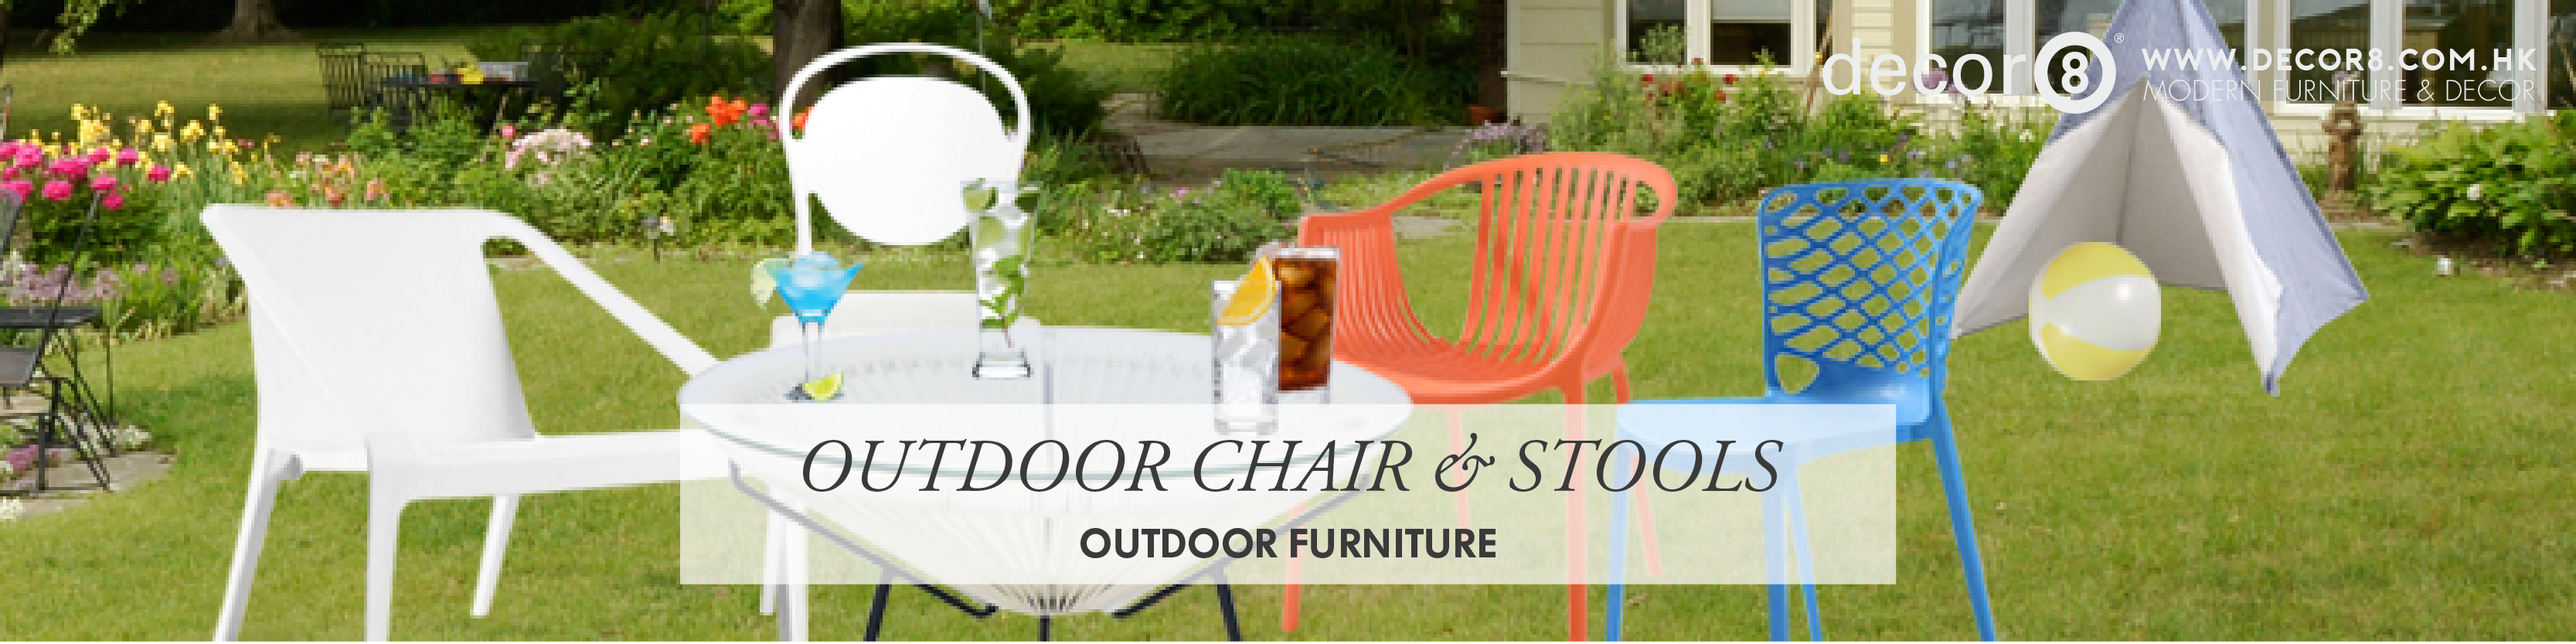 Outdoor Chair & Stools